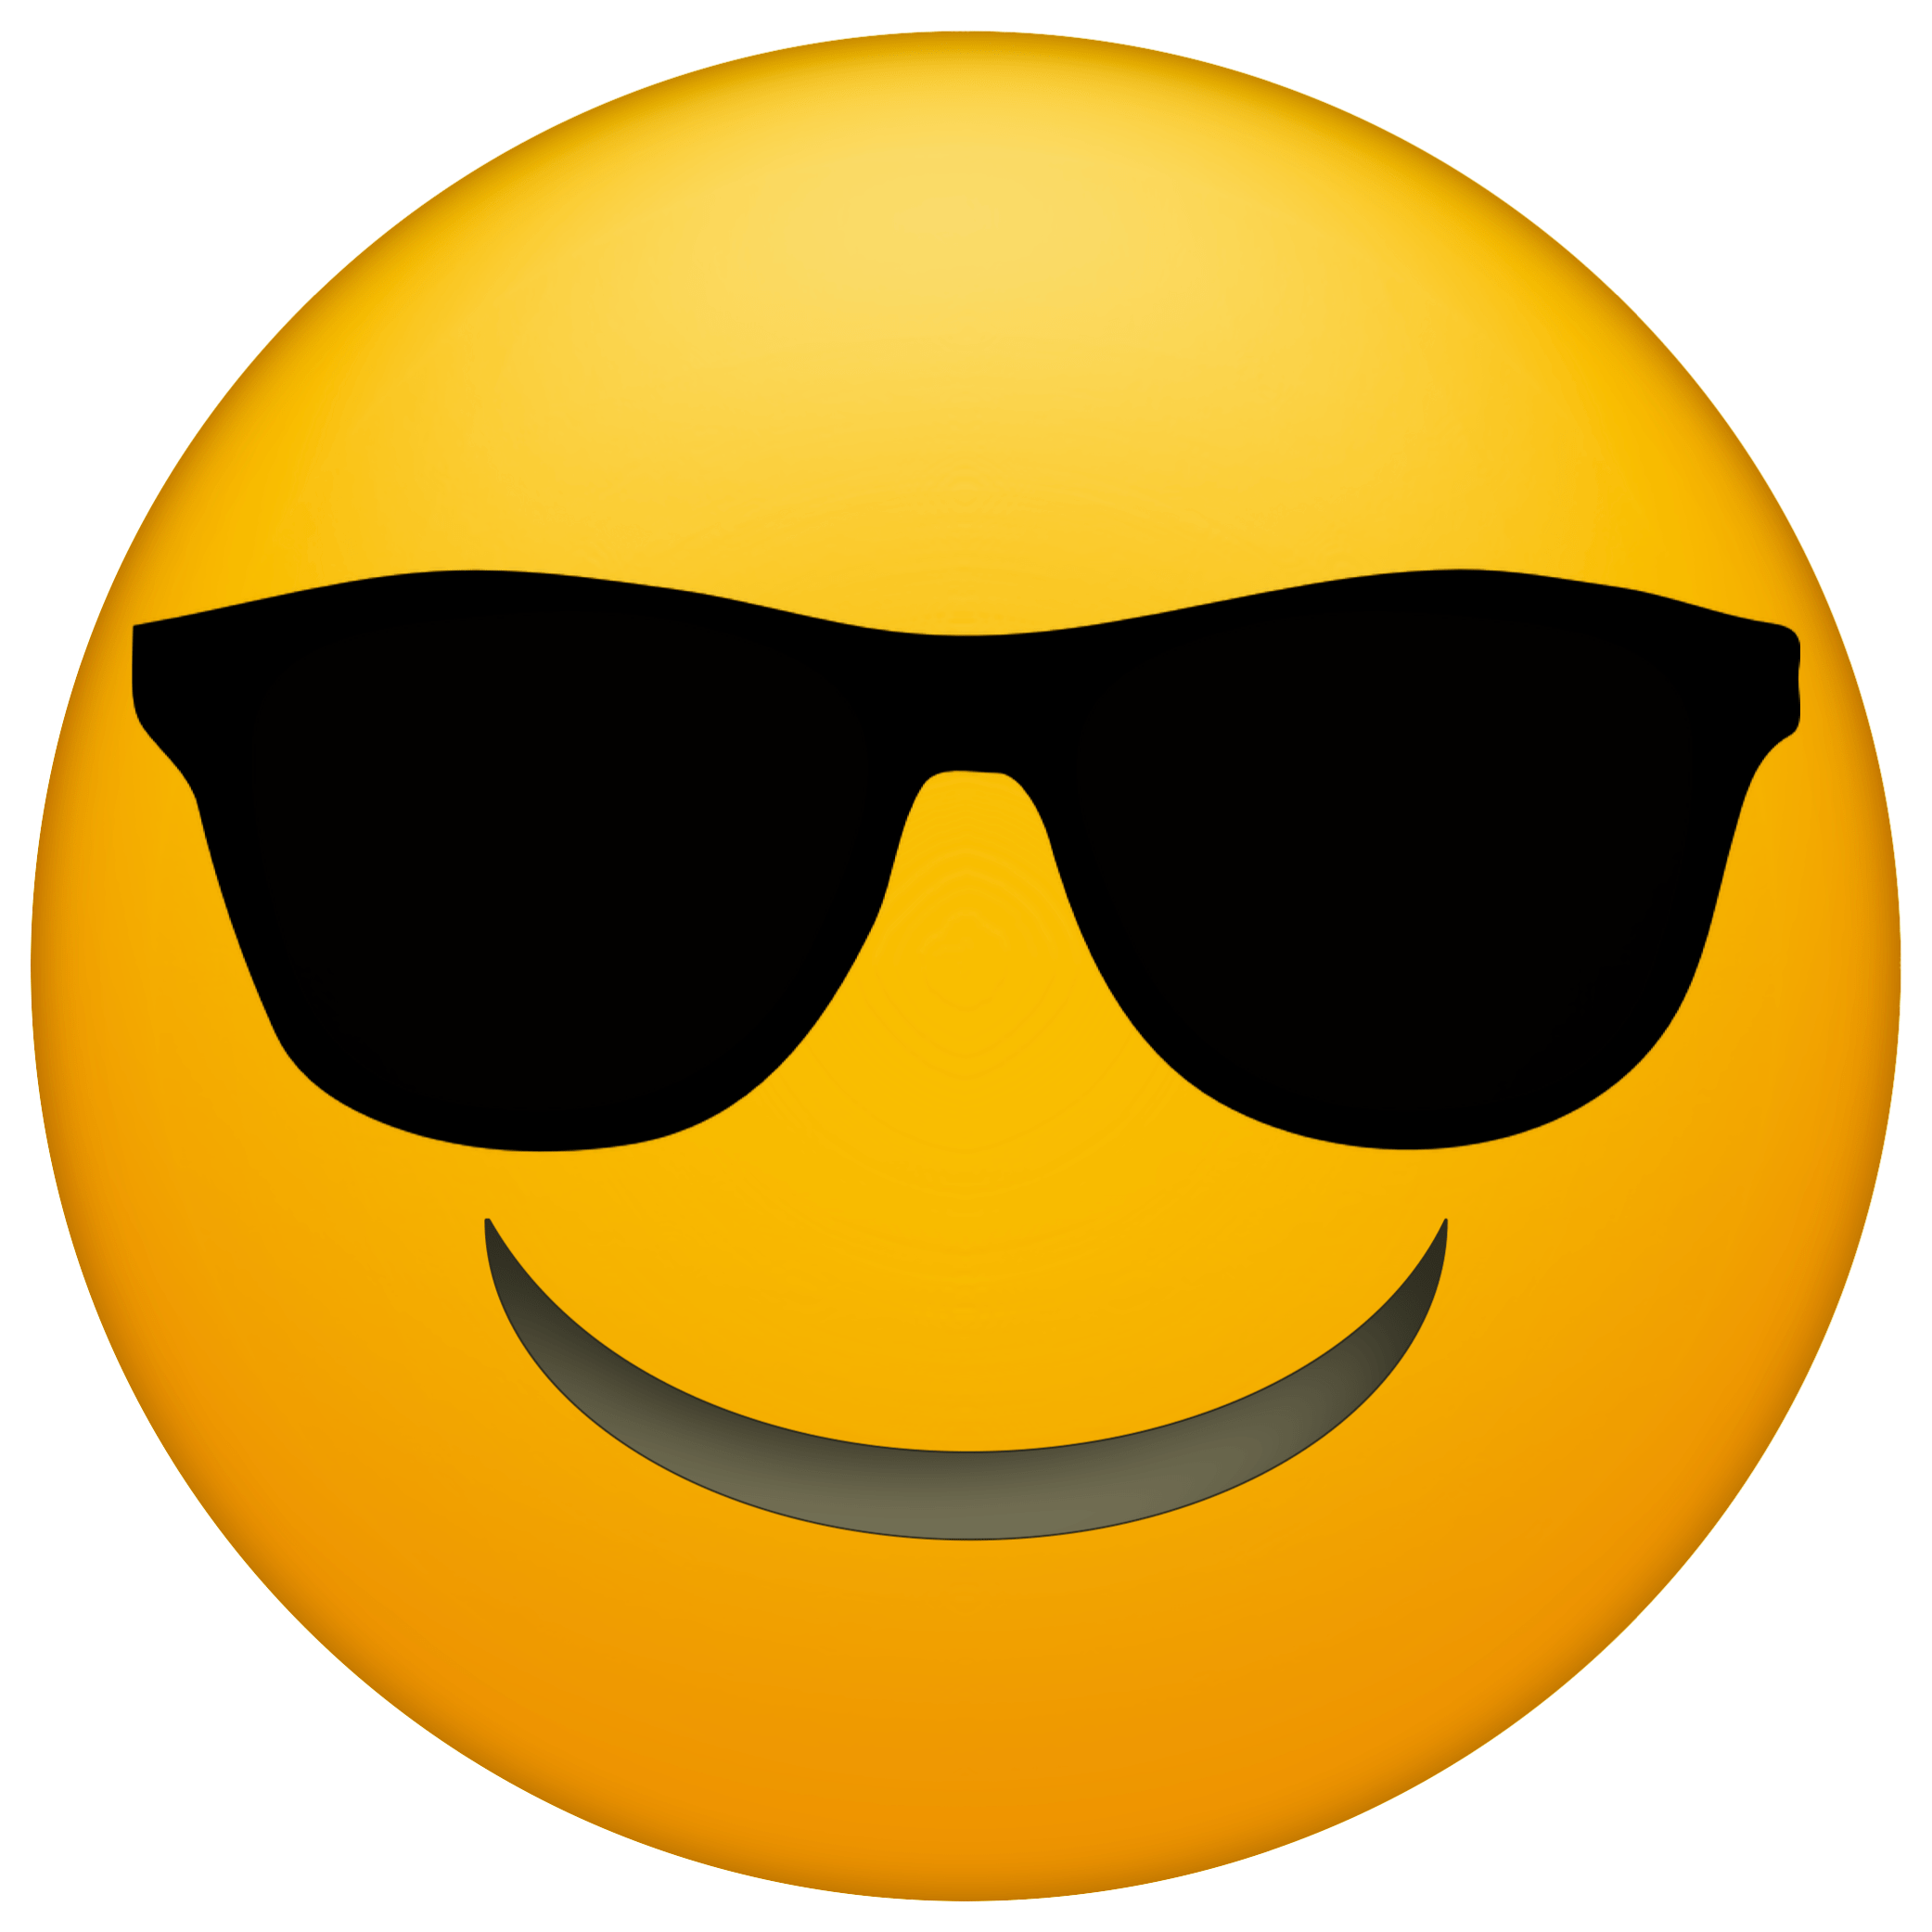 emojisunglasses.png 2,083×2,083 pixels (With images